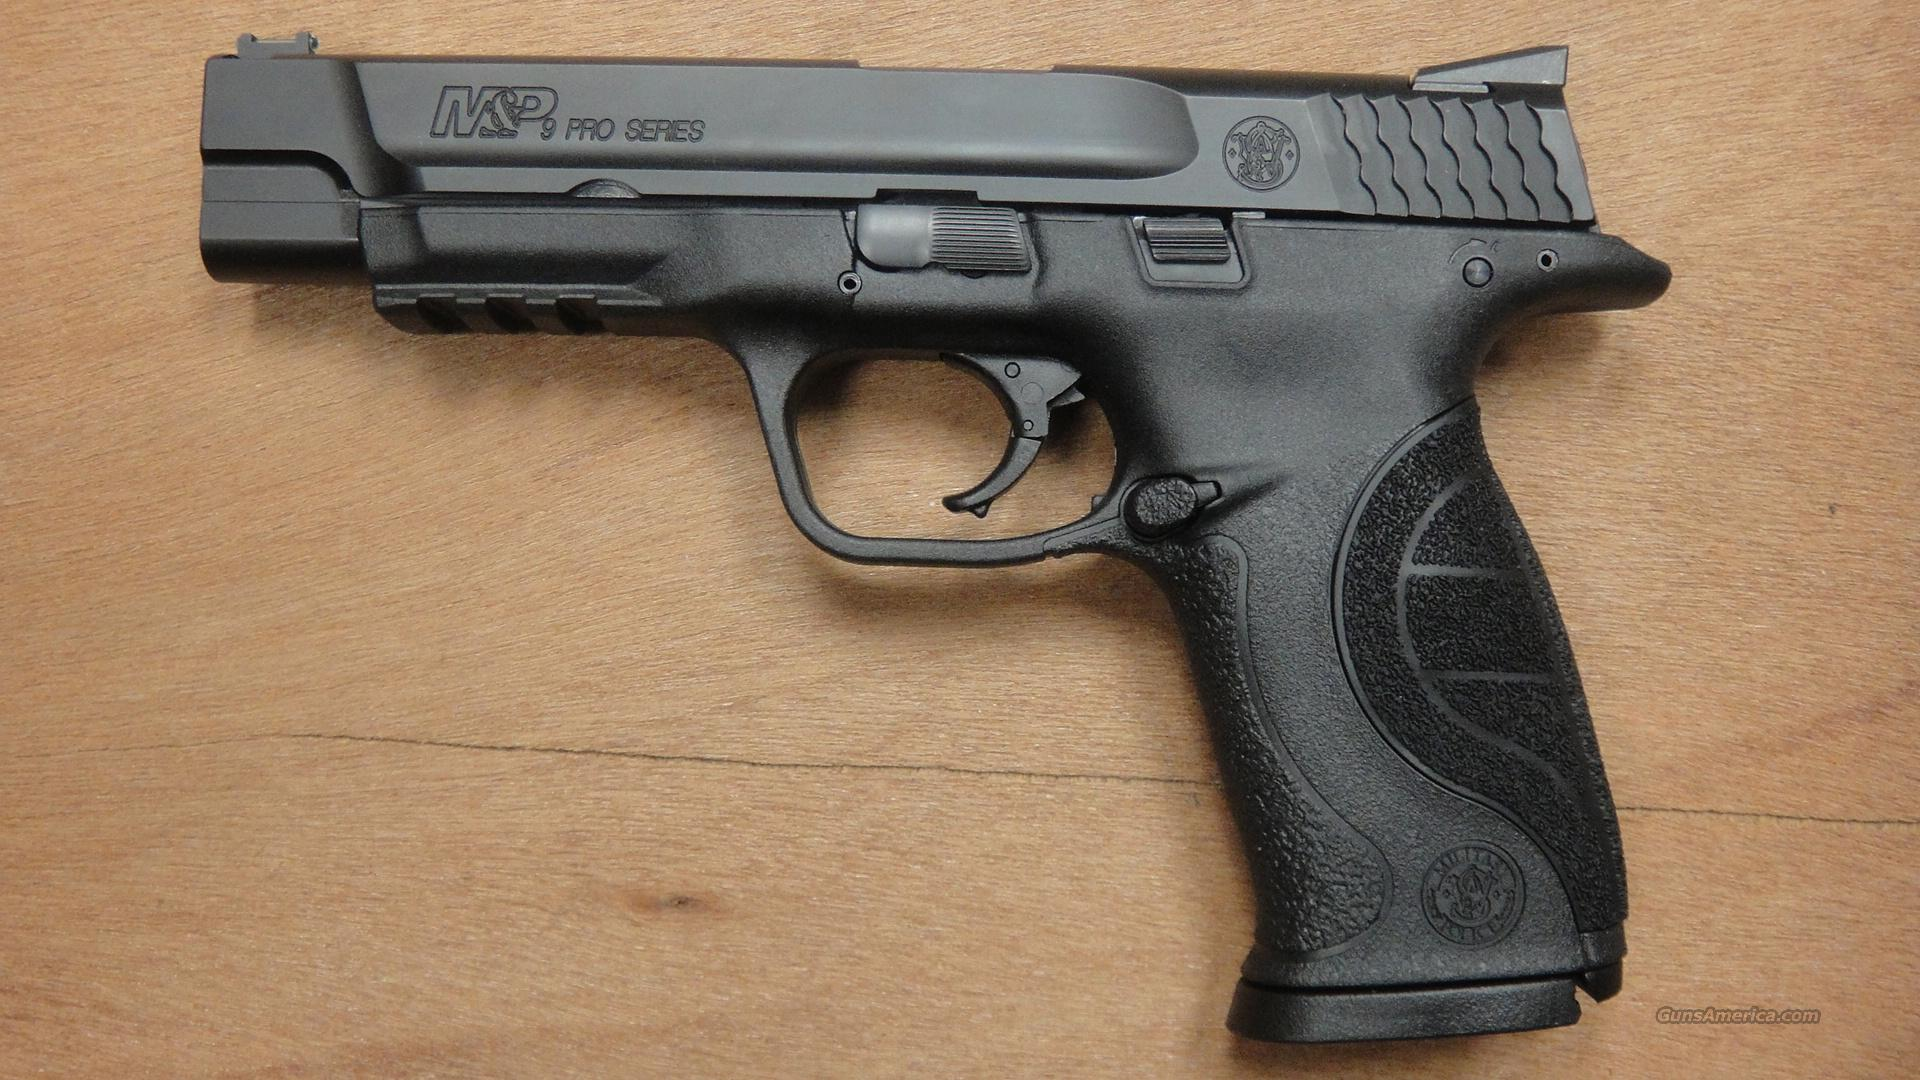 Smith & Wesson M&P9 Pro  Guns > Pistols > Smith & Wesson Pistols - Autos > Polymer Frame